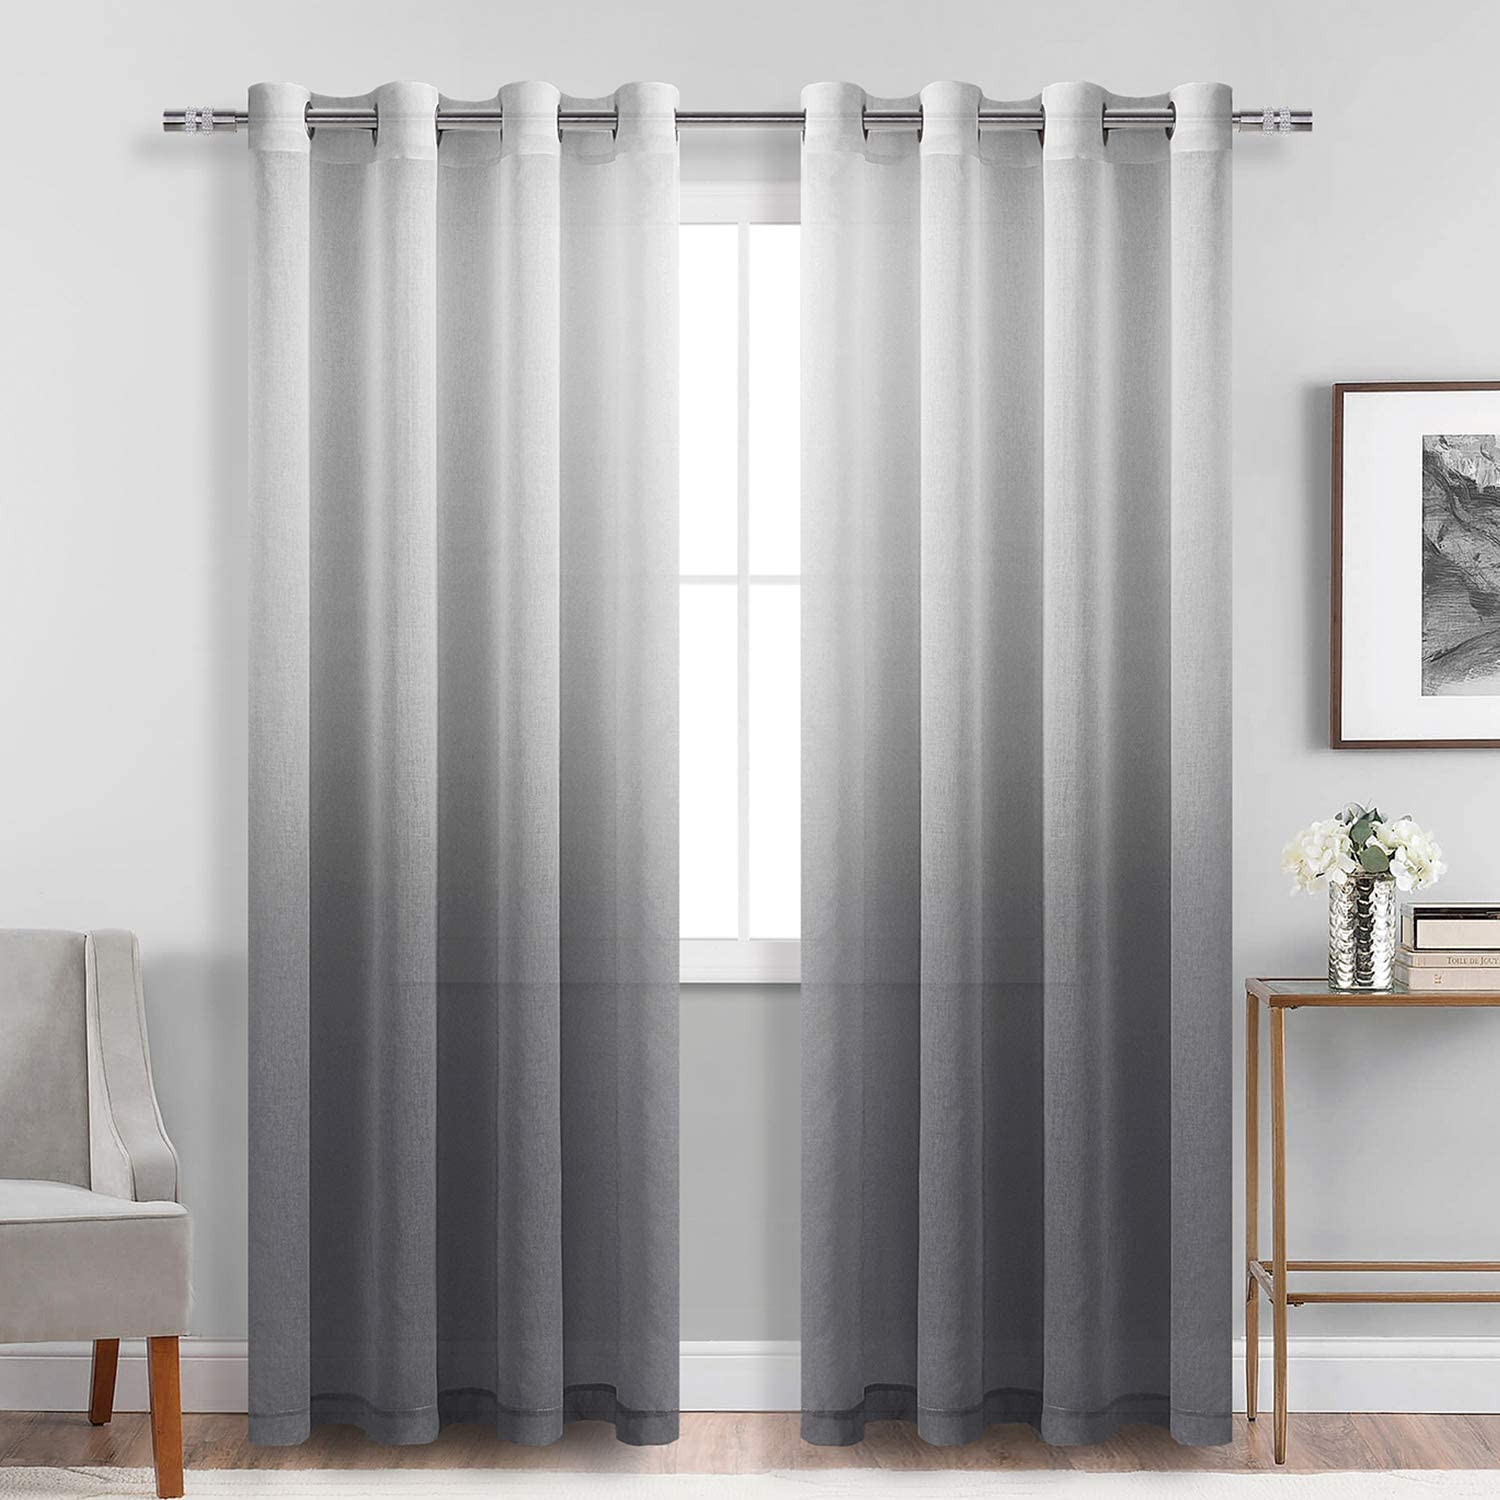 Dwcn Faux Linen Grey Ombre Sheer Curtains Gradient Semi Voile Grommet Top Window Curtains For Bedroom And Living Room Set Of 2 Panels 52 X 84 Inches Long Amazon Co Uk Kitchen Home